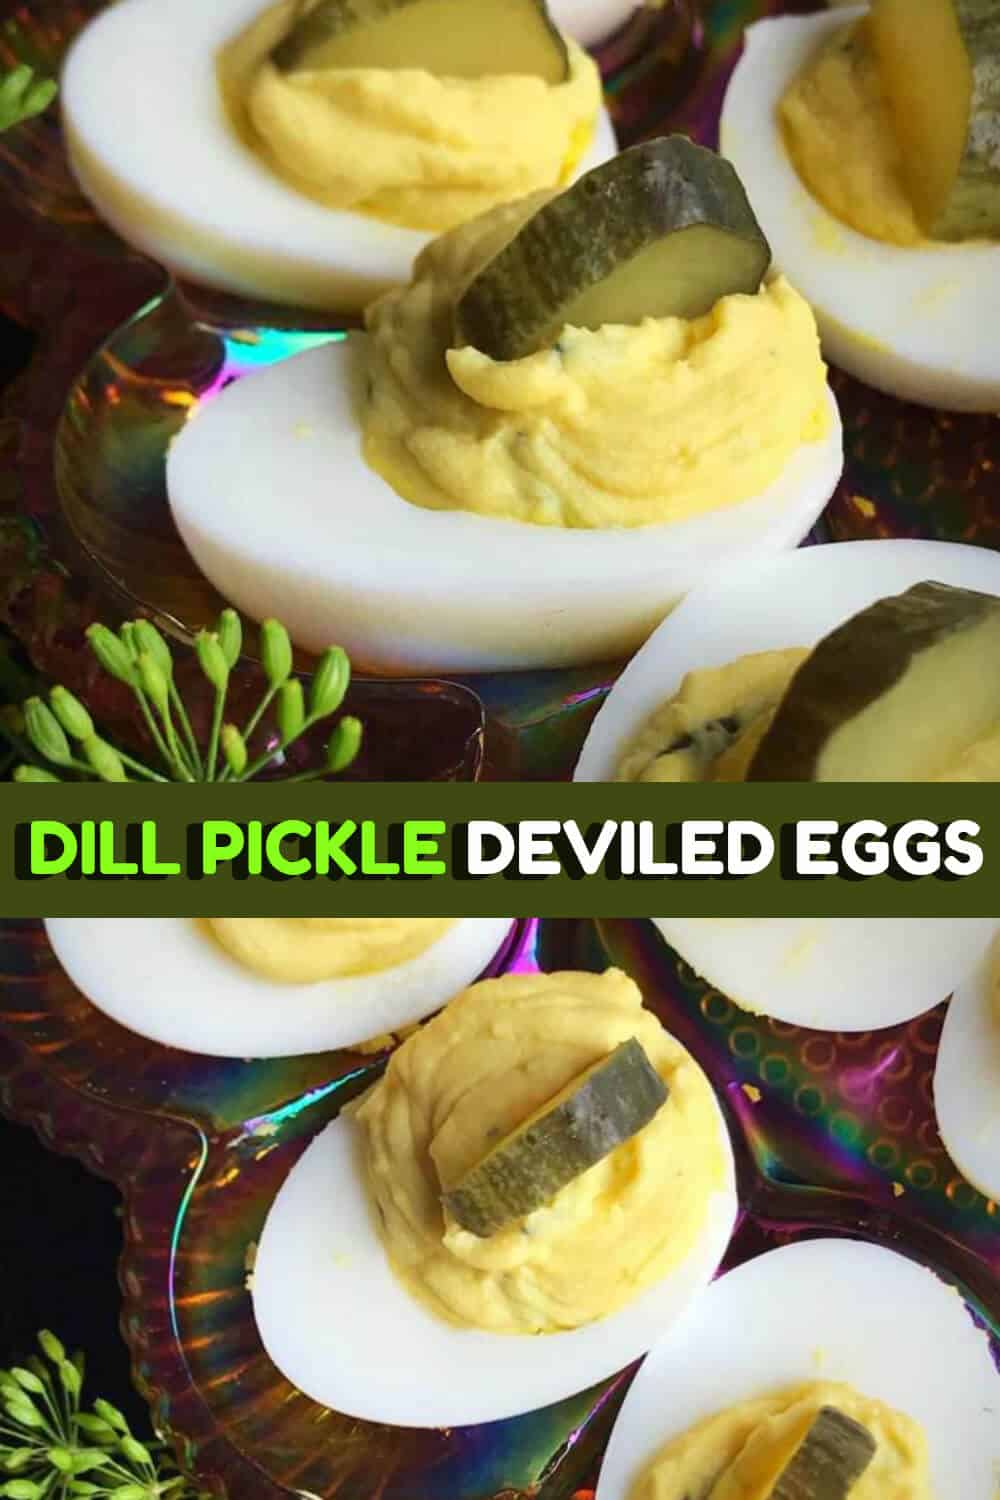 These dill pickle deviled eggs combine two of my favorite things; deviled eggs and dill pickles. They are a great bite sized snack and the perfect appetizer! #eggs #deviledeggs #pickle #dill